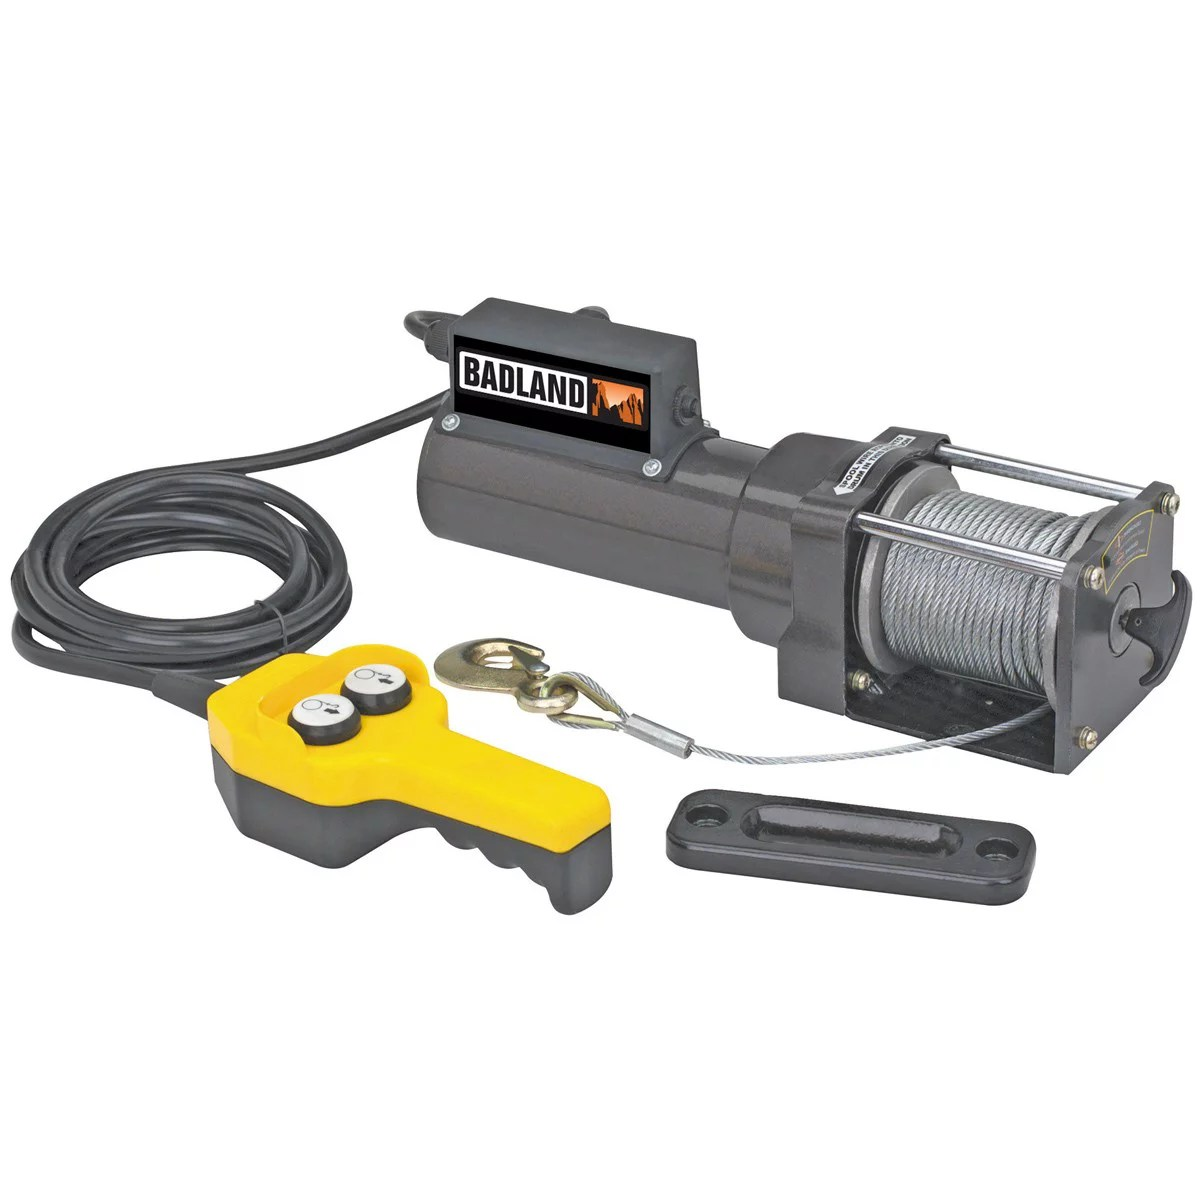 small resolution of badland electric winch 1500 lb capacity 120 volt ac hoist controlbadland electric winch 1500 lb capacity